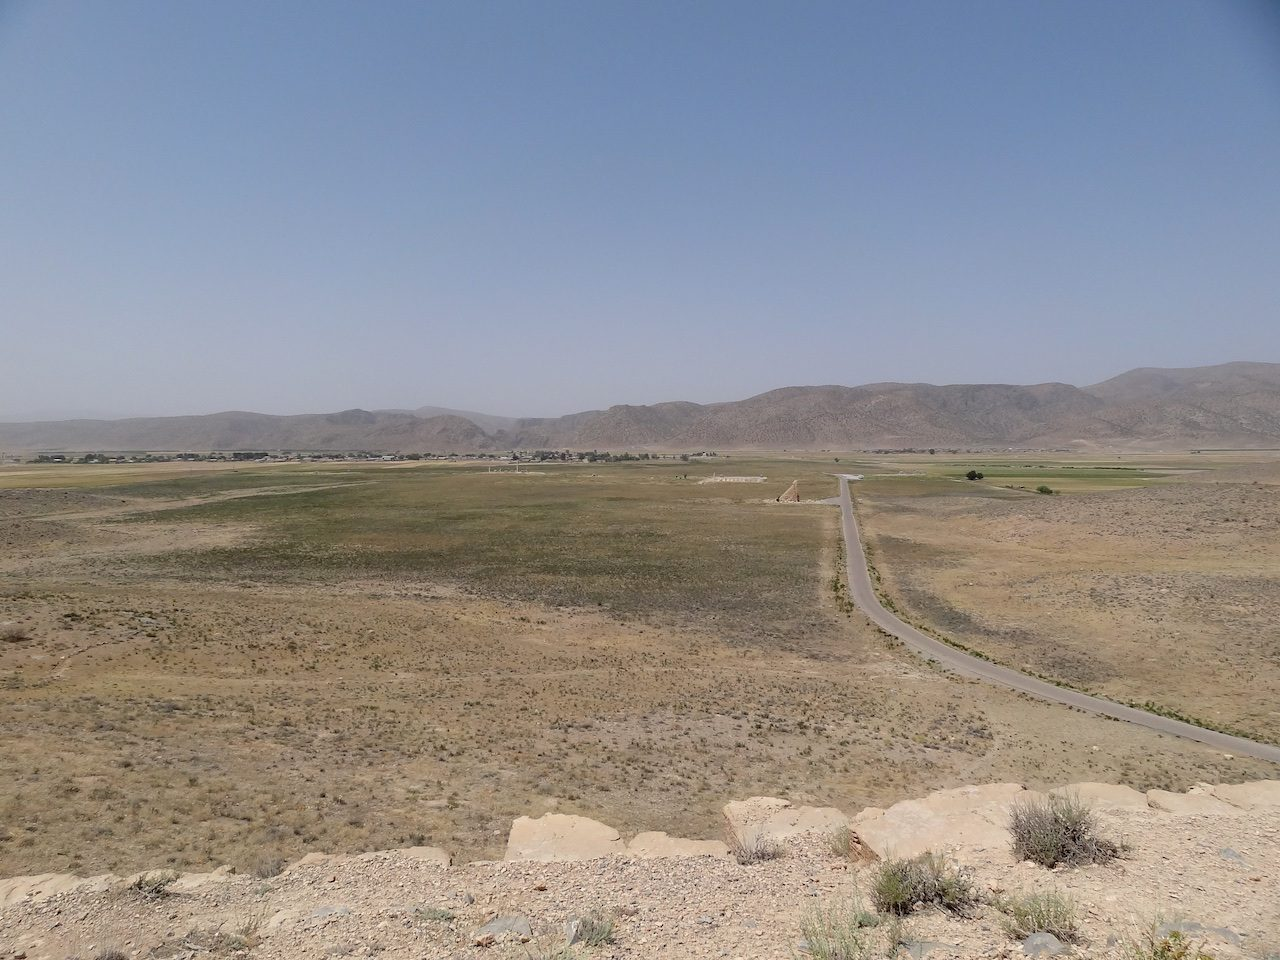 View from Throne Hill, Prison of Solomon in the mid distance